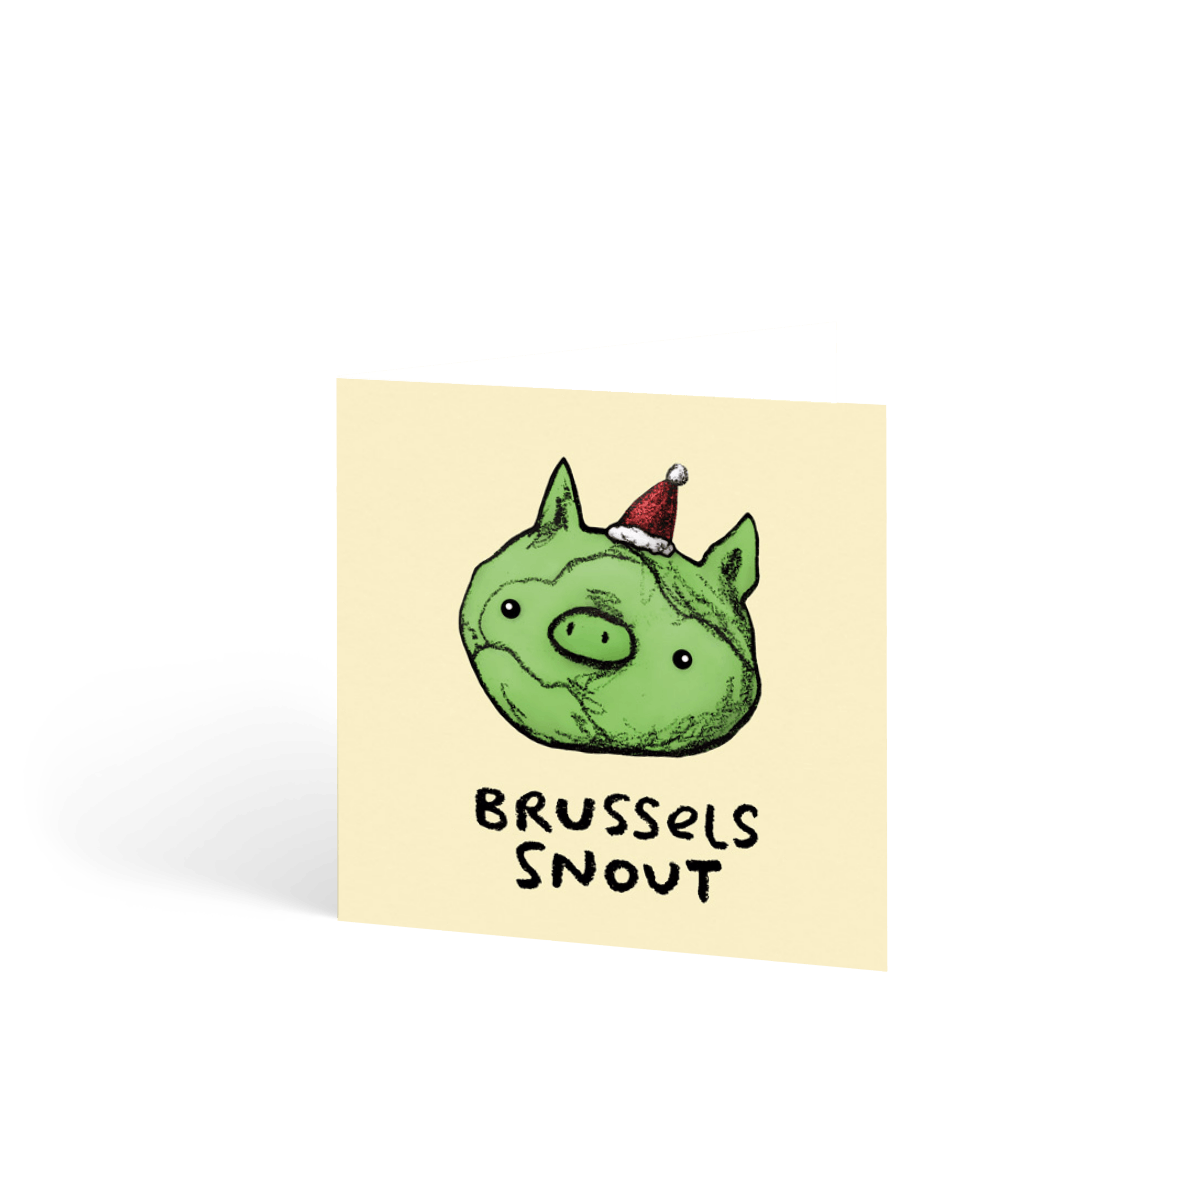 Https%3a%2f%2fwww.papier.com%2fproduct image%2f14552%2f16%2fbrussels snout 3881 avant 1480431534.png?ixlib=rb 1.1